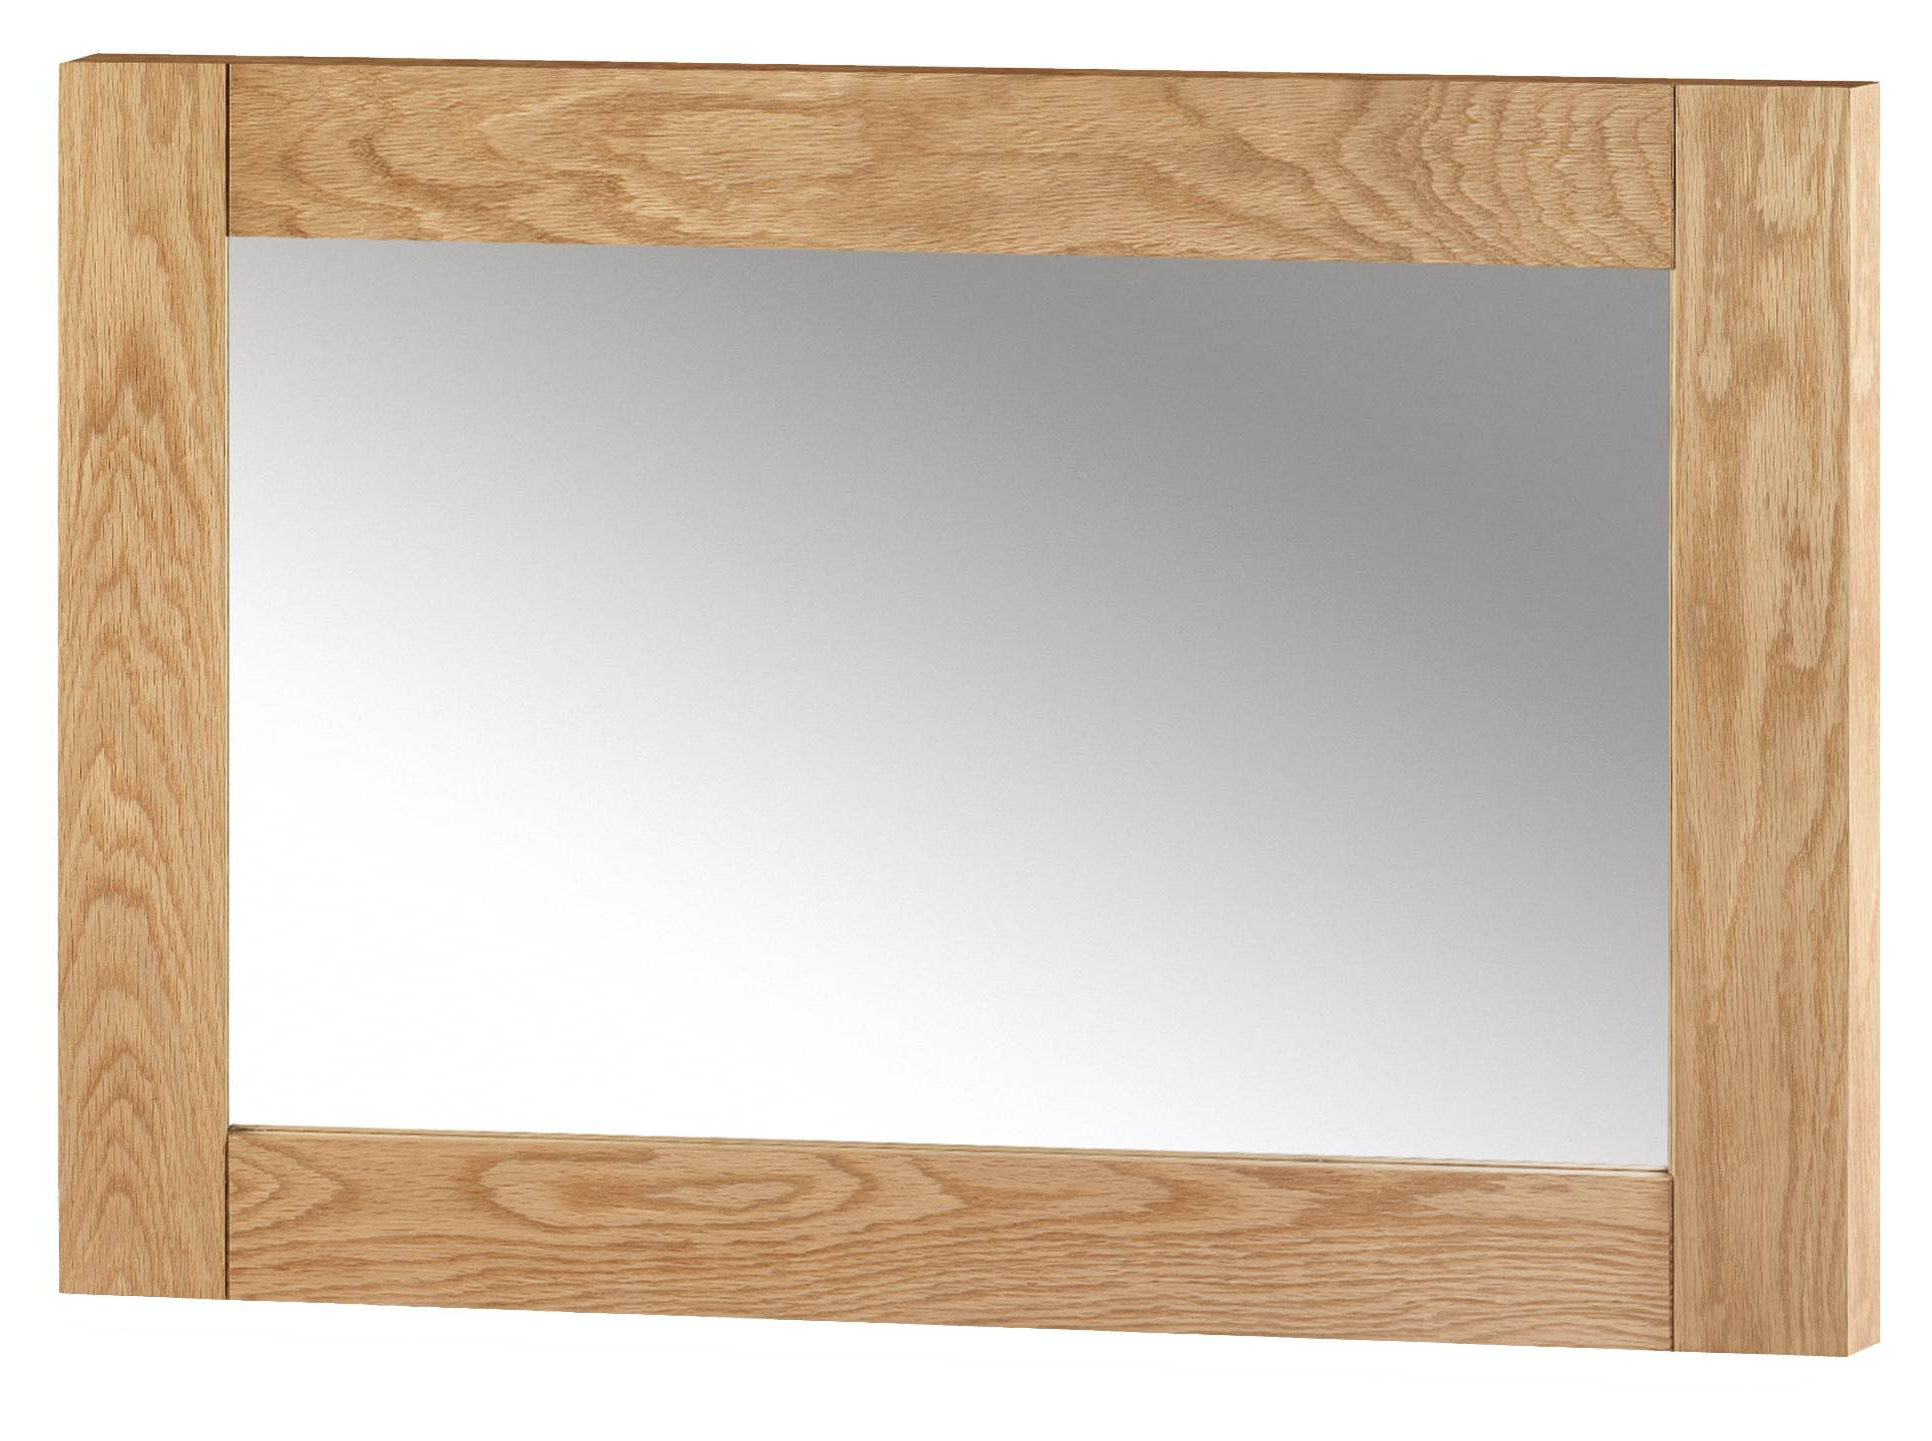 2020 Julian Bowen Marlborough Oak Wall Mirror Within Oak Wall Mirrors (View 1 of 20)